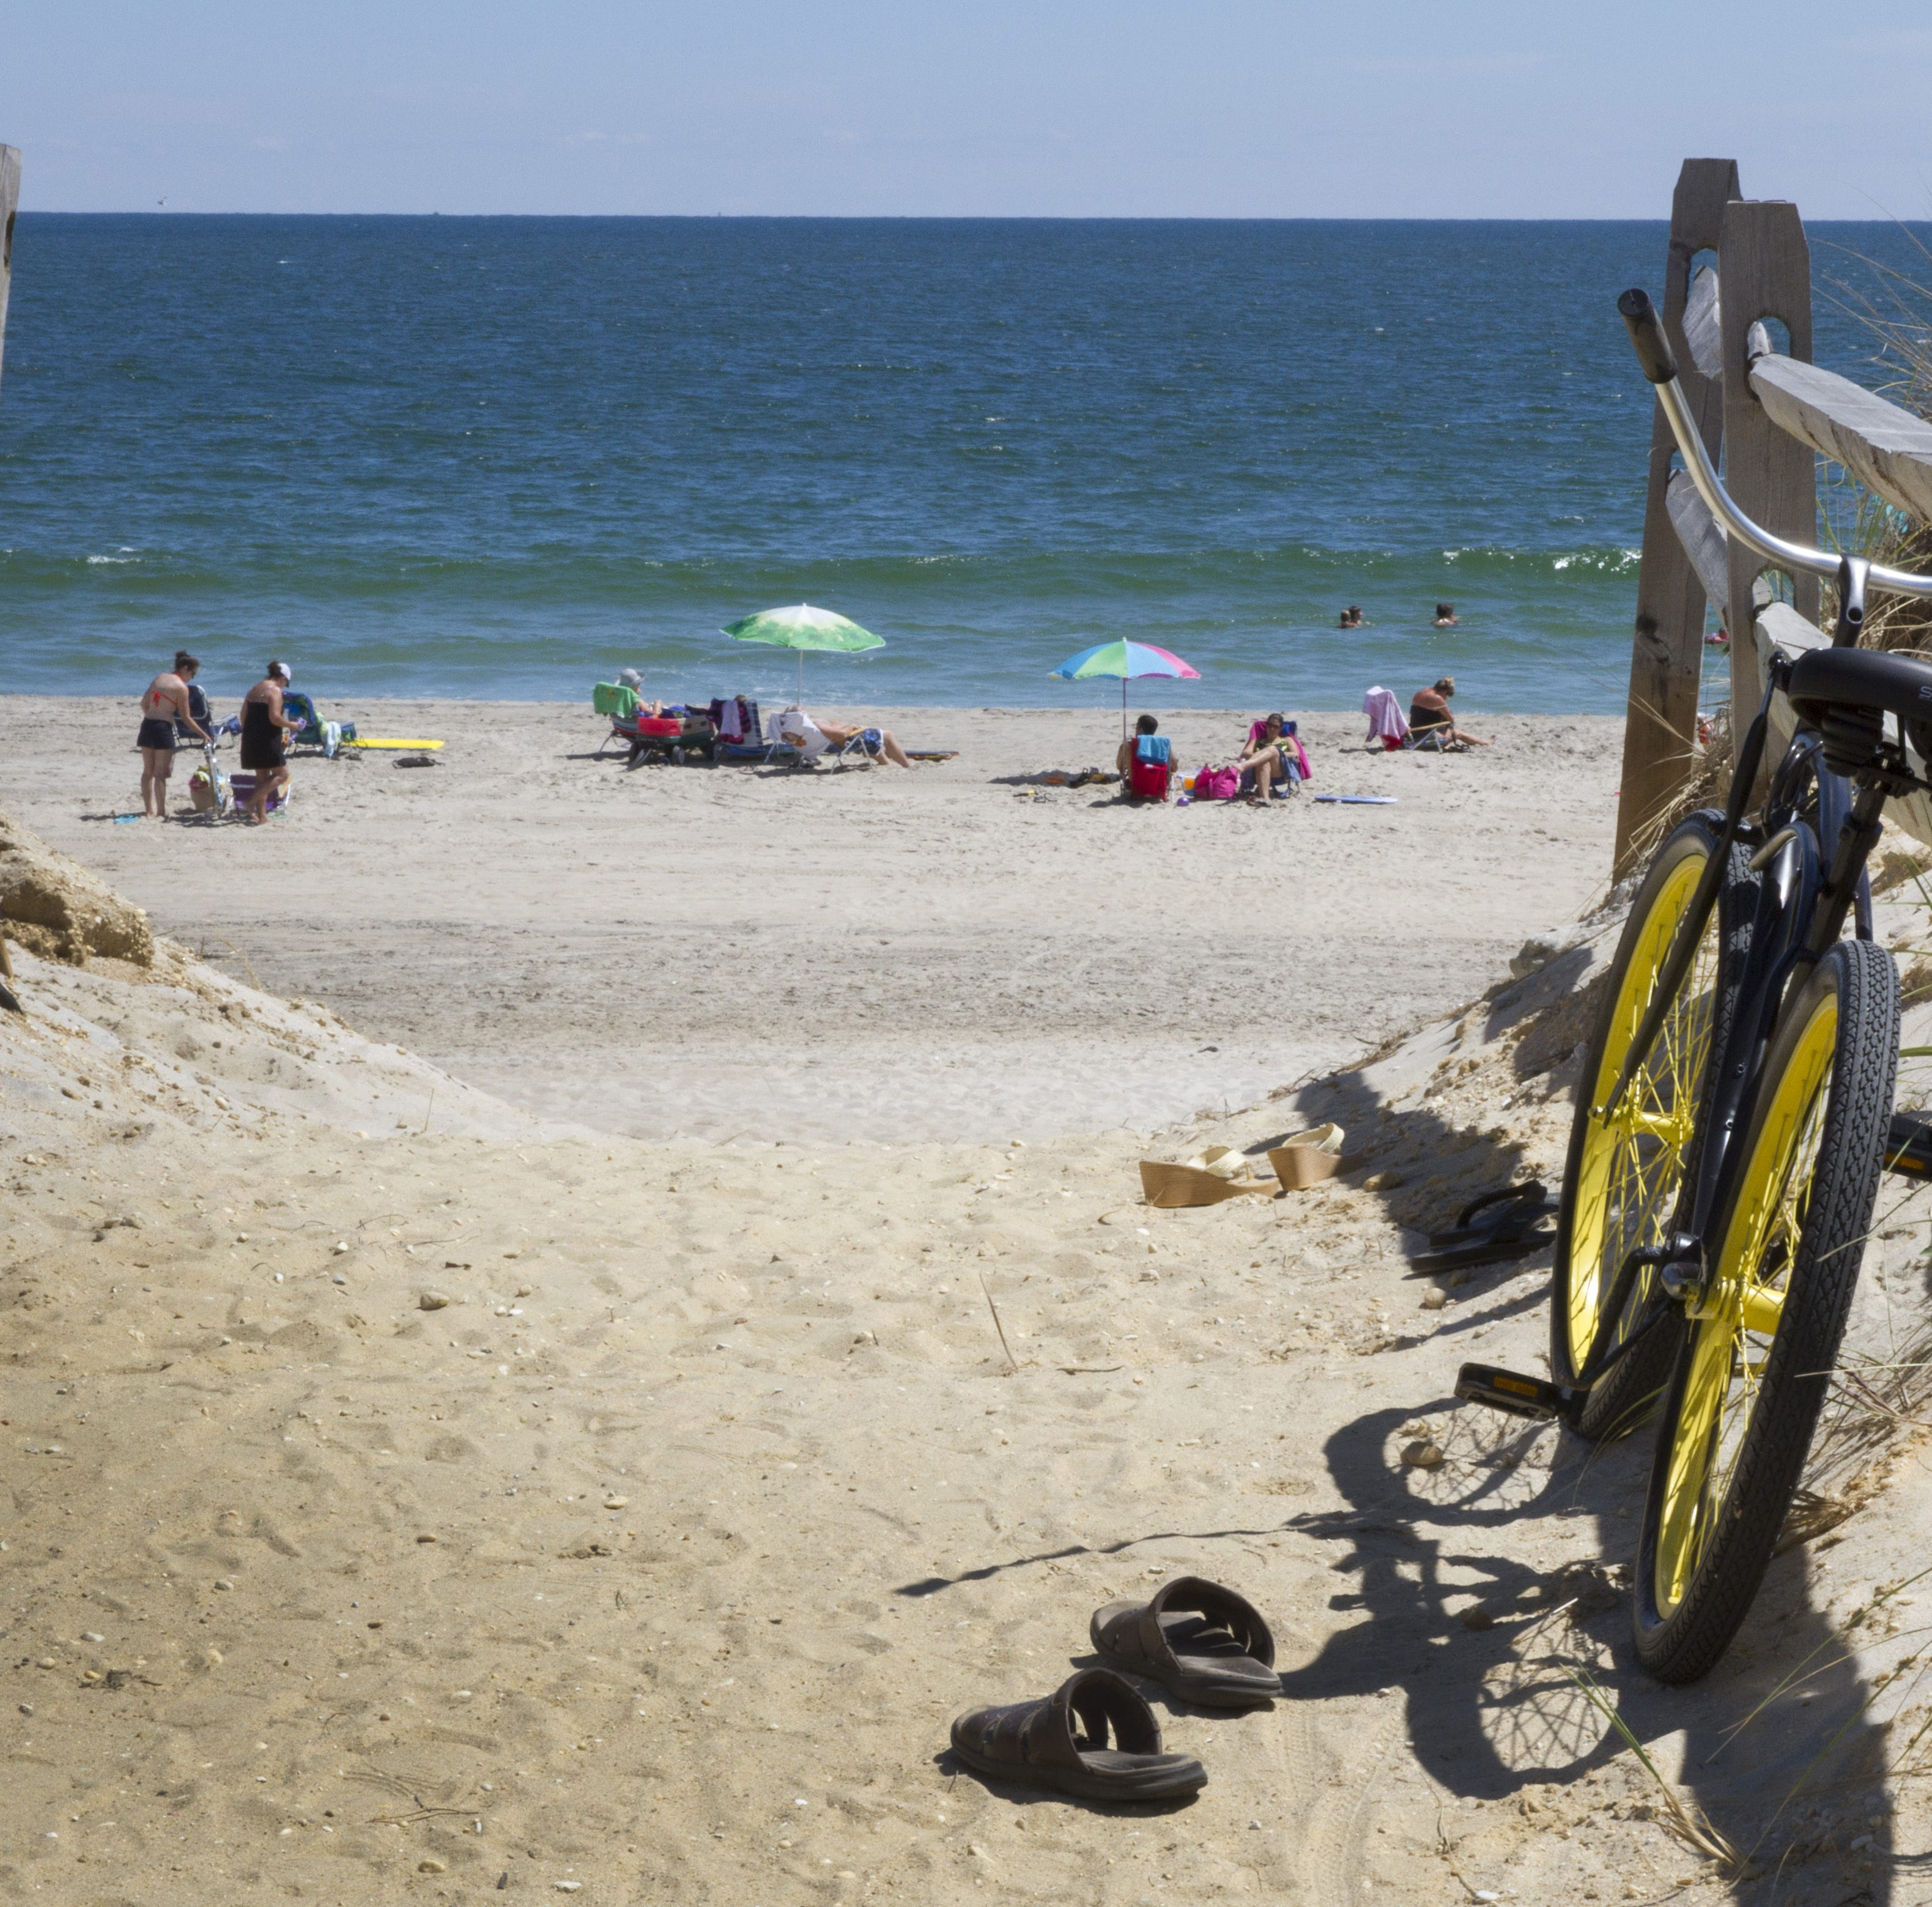 Favorite Shore towns: Fun, food, family student's common denominator